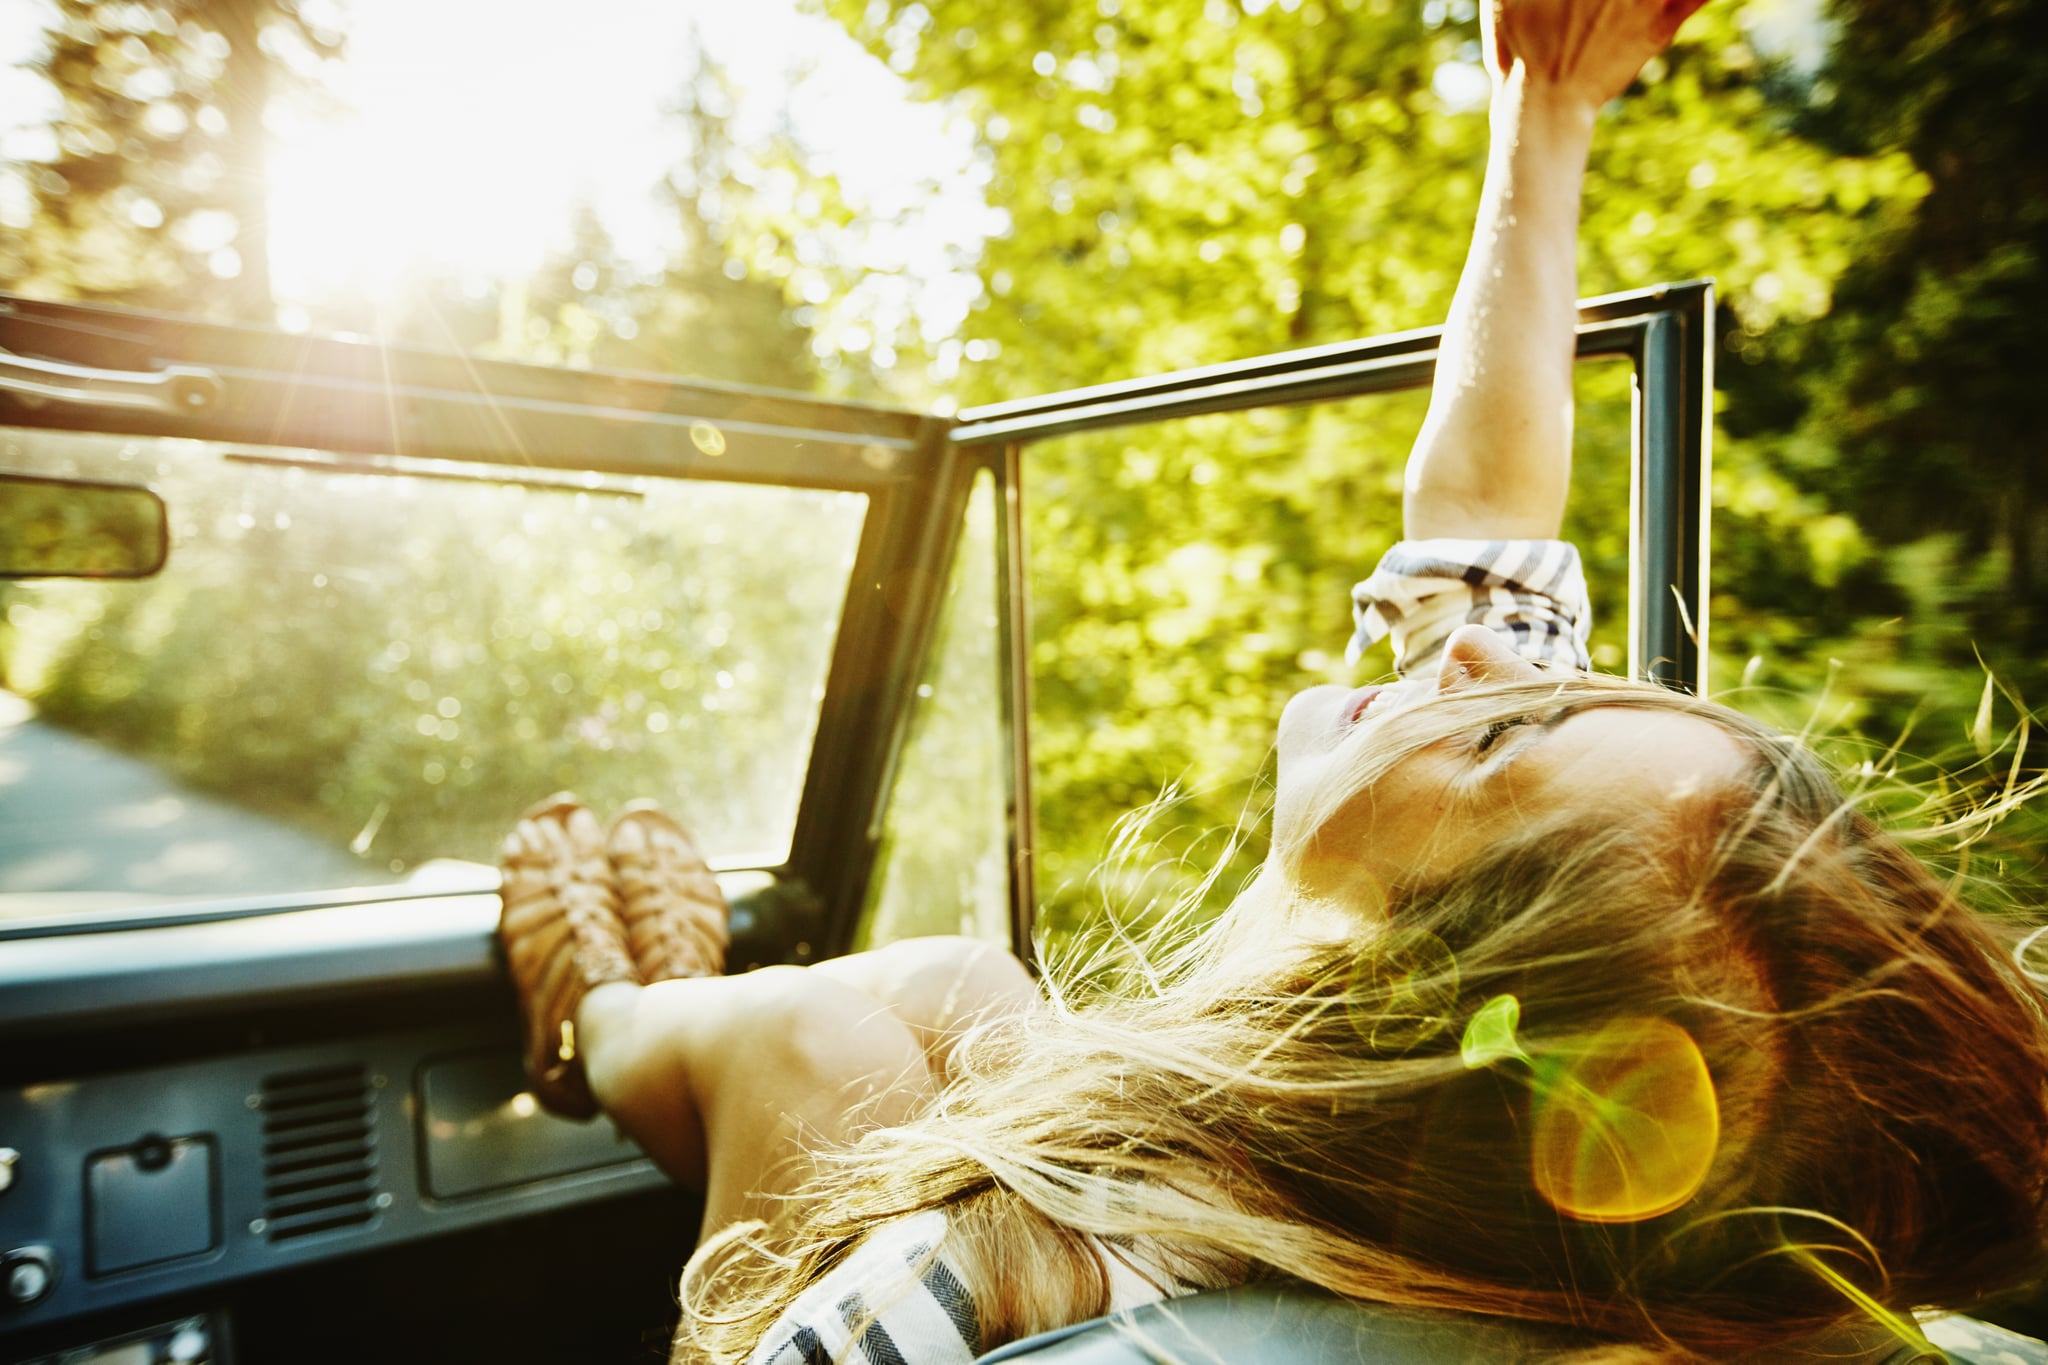 Woman riding in passenger seat of convertible with head back and arm raised towards sky